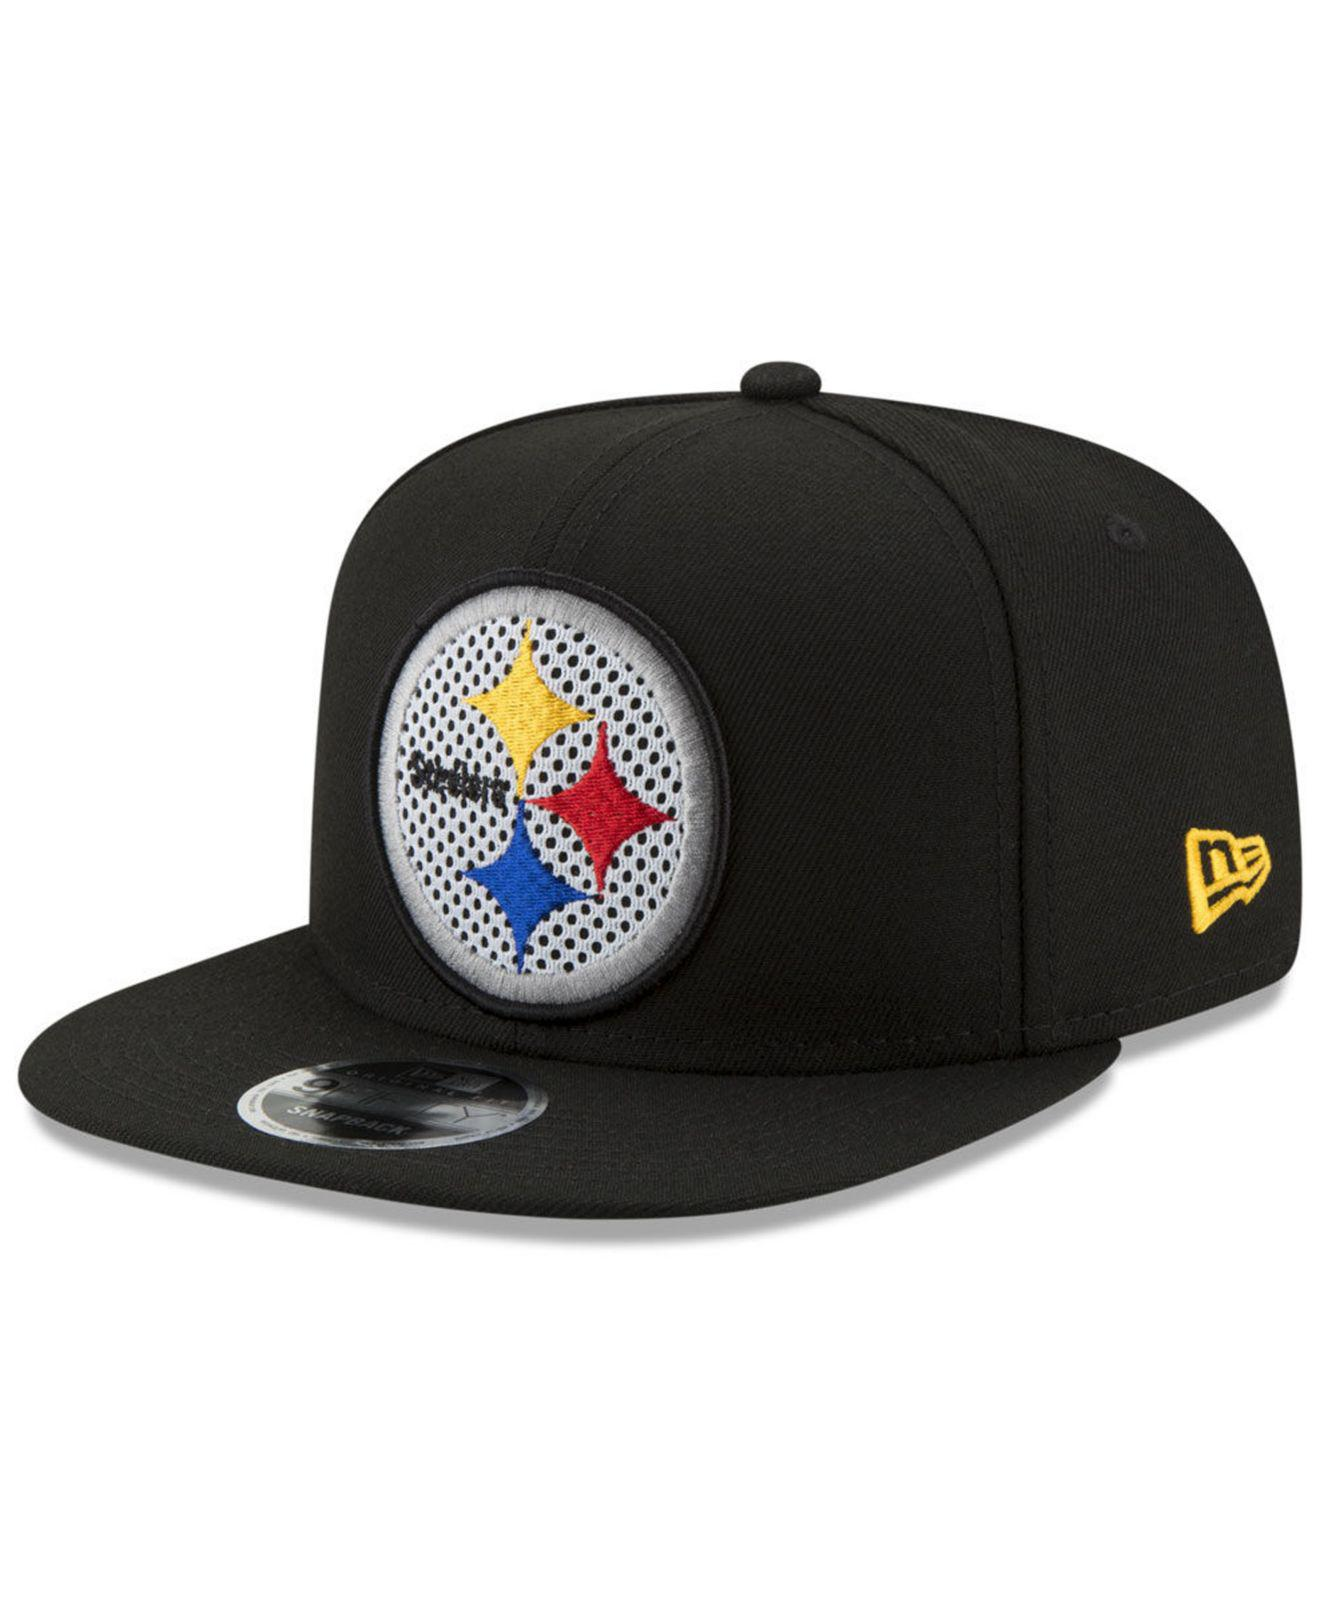 a6bea3d000e Lyst - KTZ Pittsburgh Steelers Meshed Mix 9fifty Snapback Cap in ...